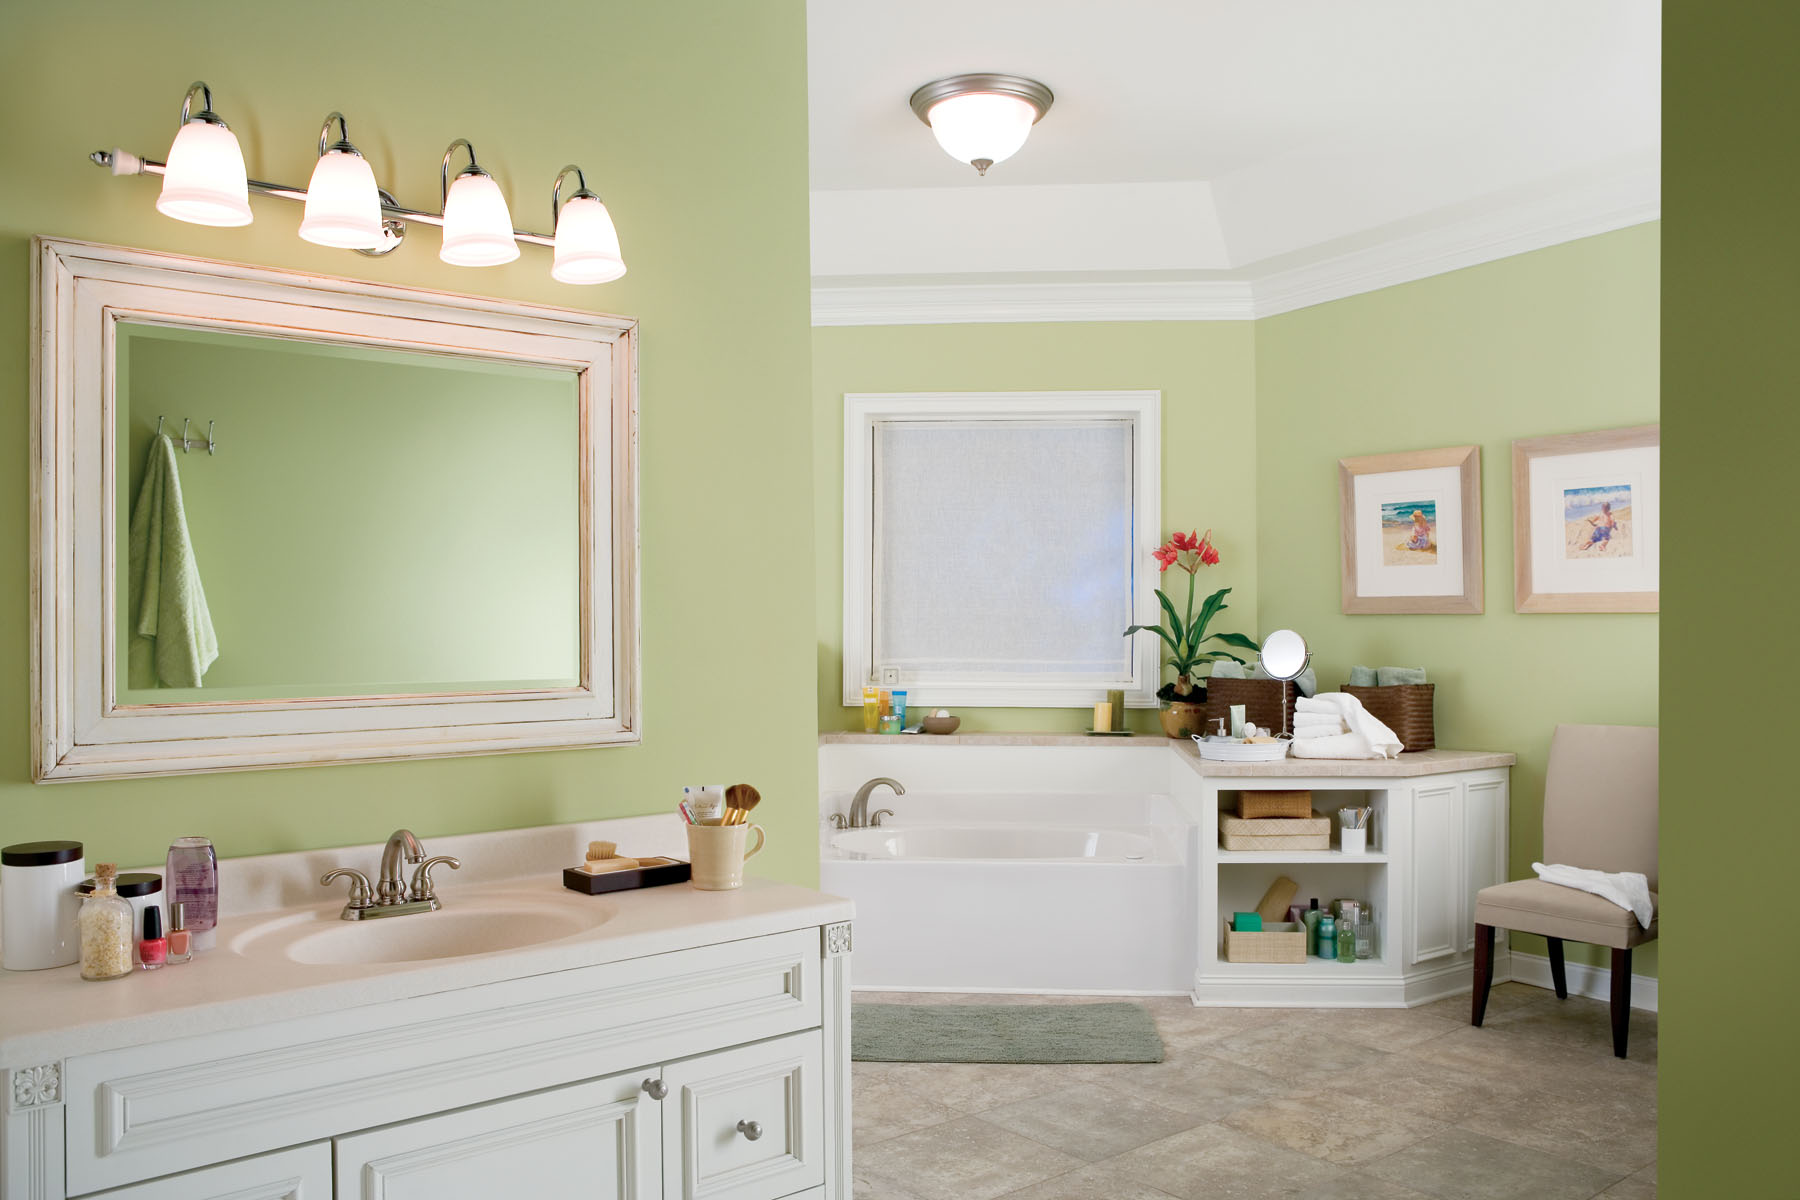 Ge reveal led lighting provides energy efficiency and for Light bulbs for bathrooms